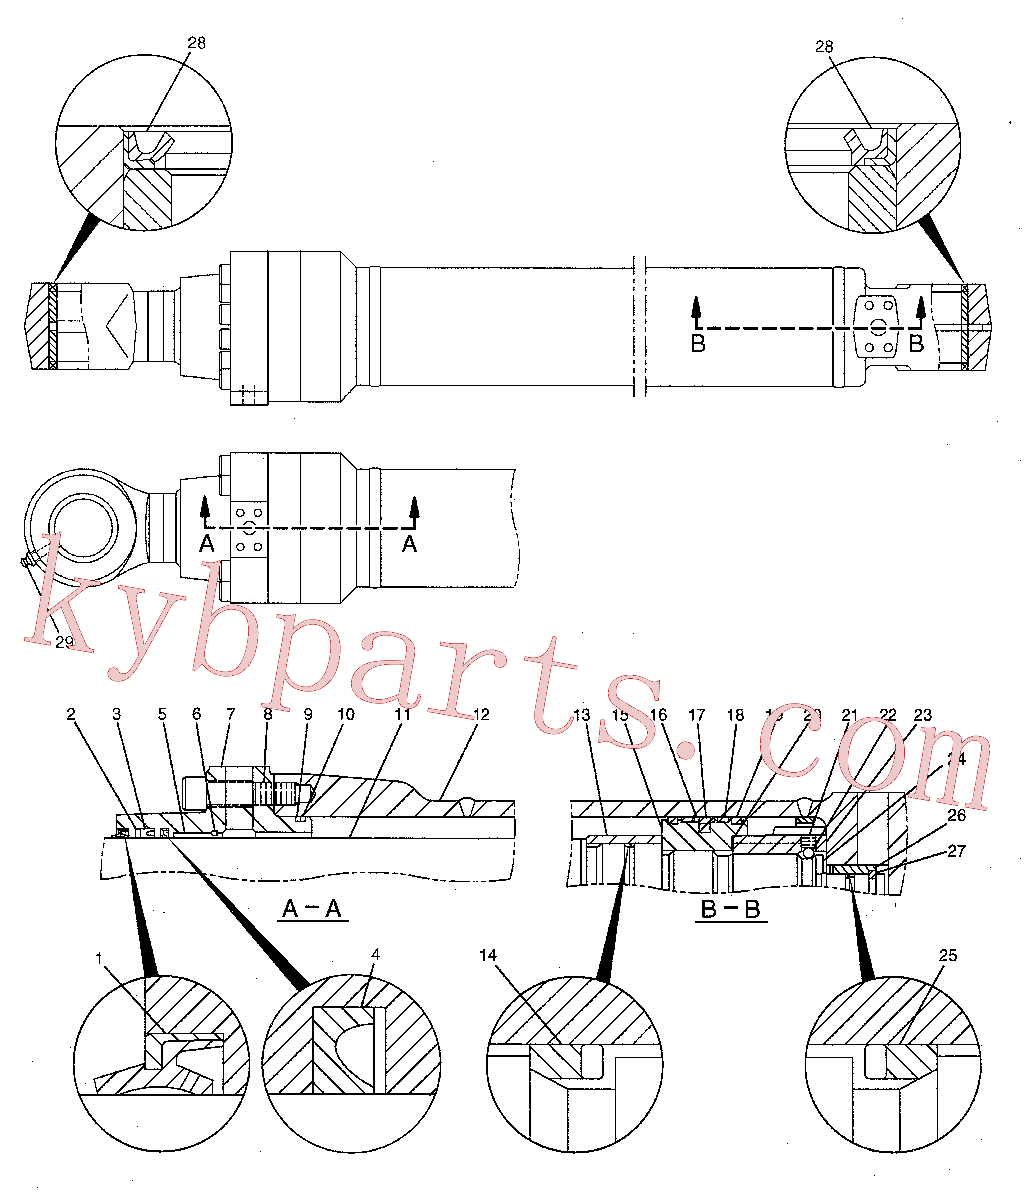 CAT 126-1879 for 321C Excavator(EXC) hydraulic system 204-3615 Assembly